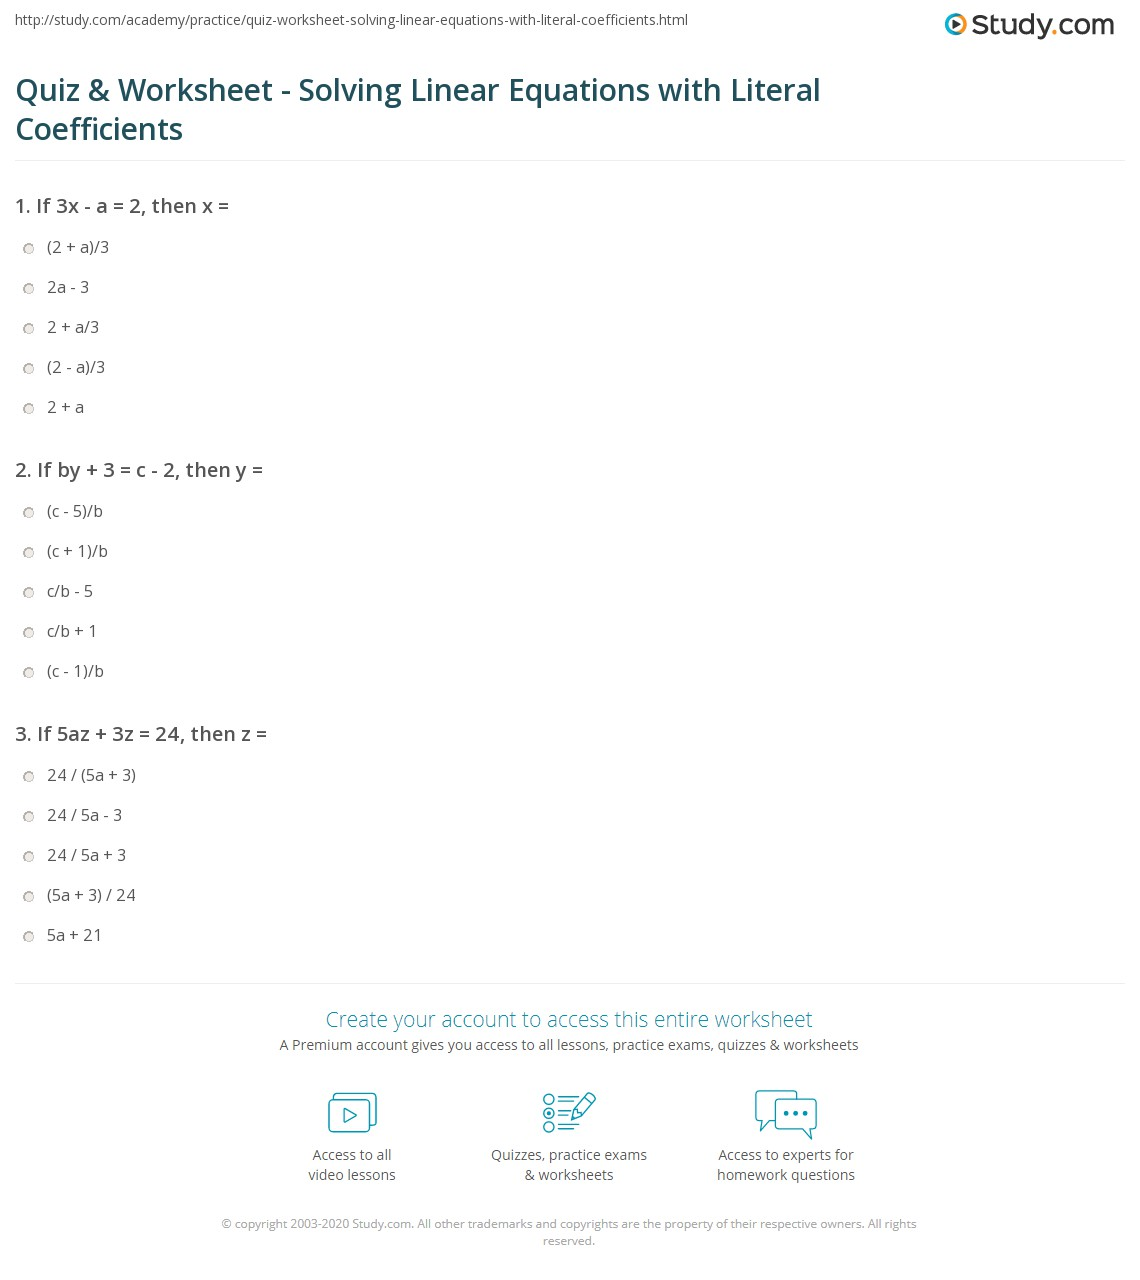 Quiz Worksheet Solving Linear Equations With Literal